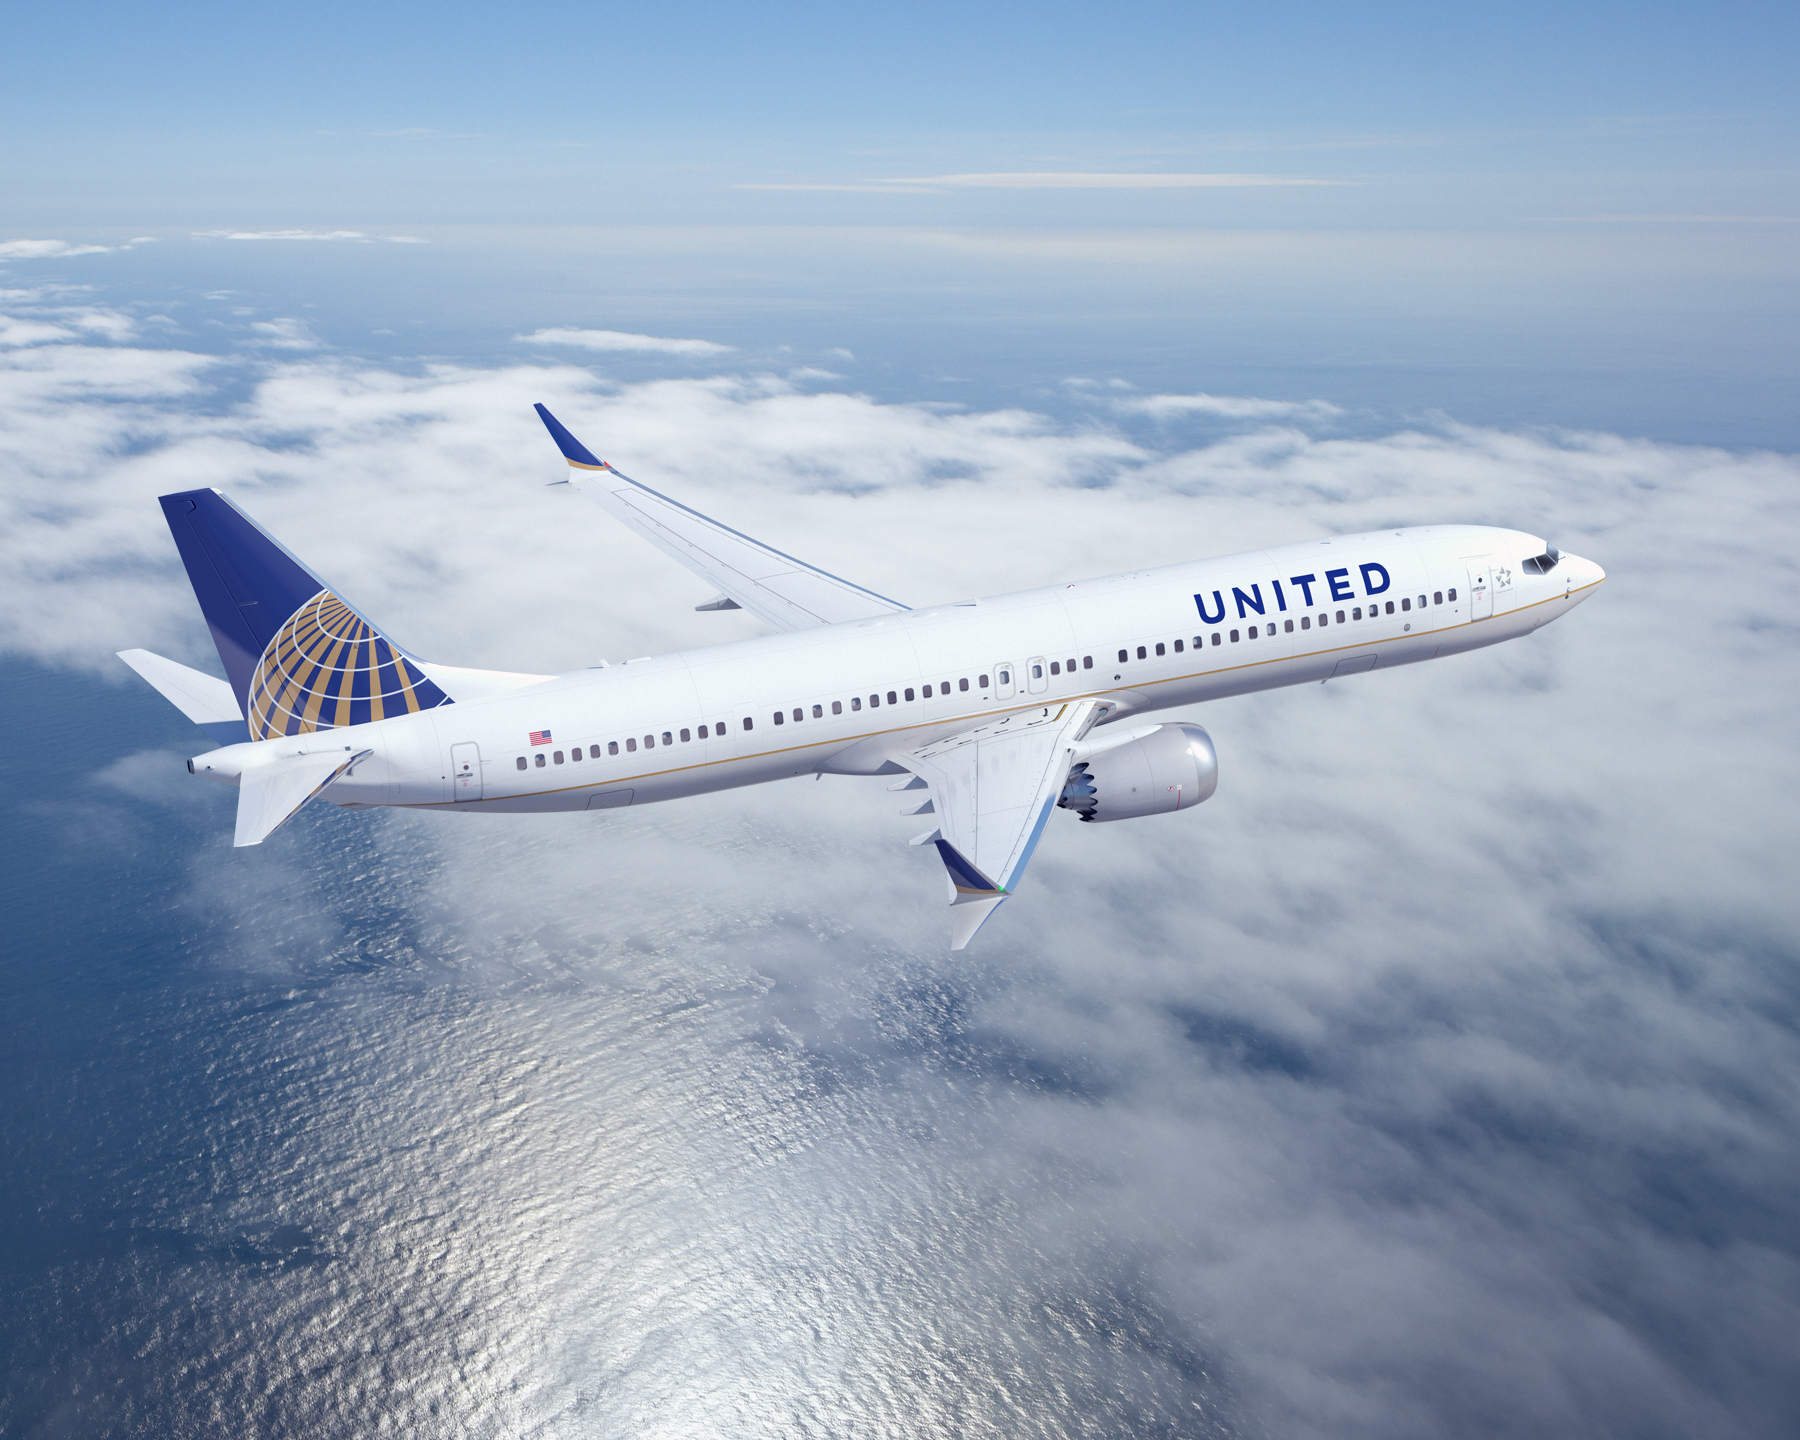 United Airlines Carry On Sizes Rules Restrictions Read Before Flying,One Bedroom Studios For Rent